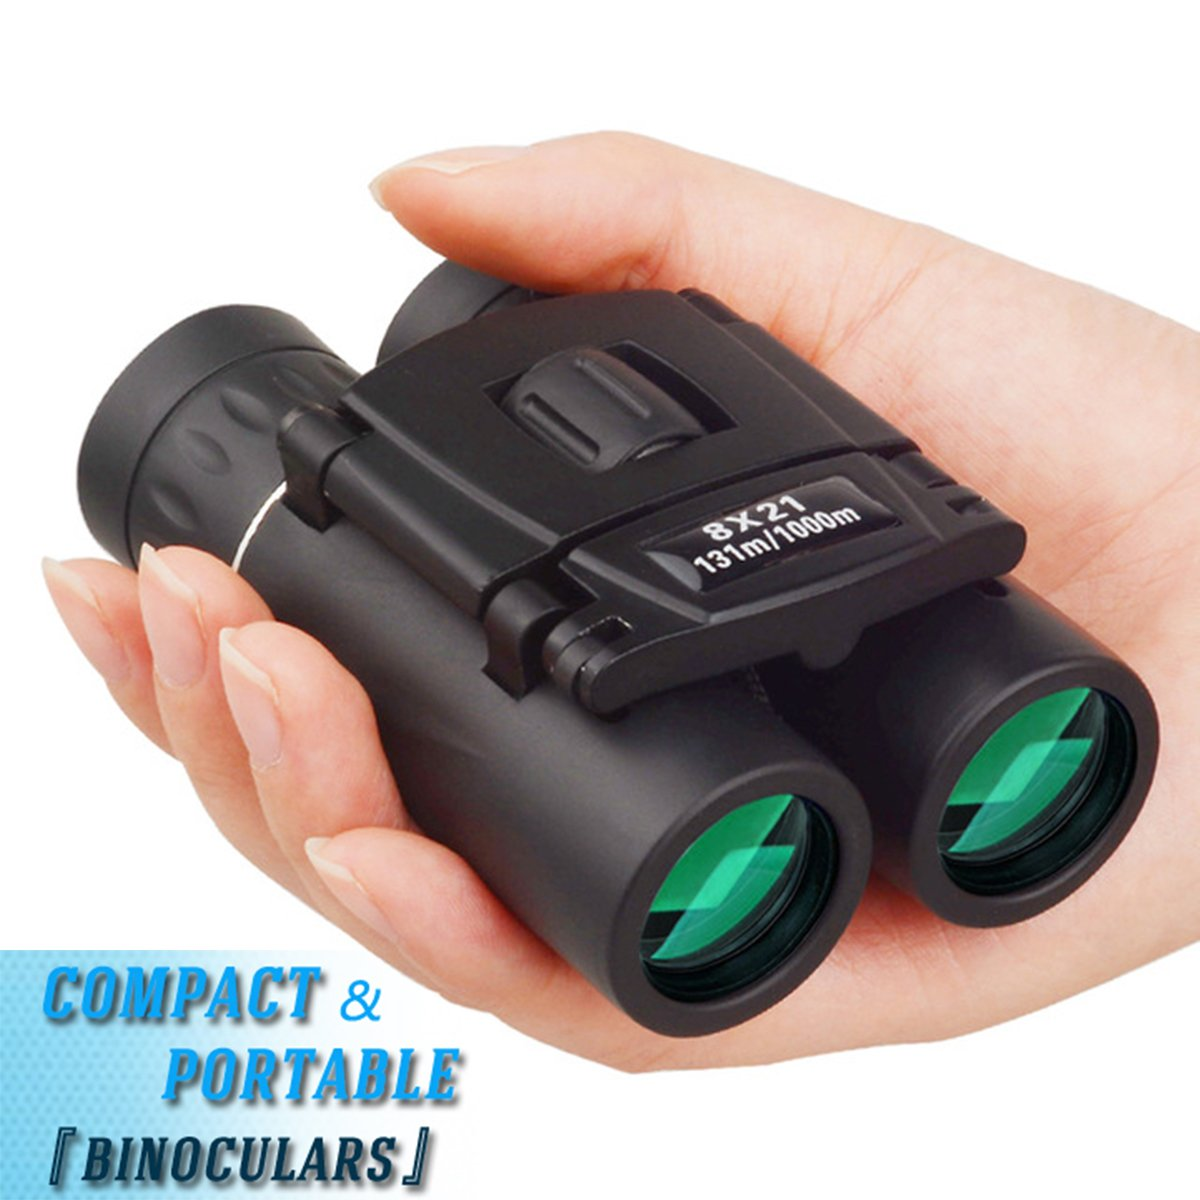 8x21 Compact Binoculars for Adult Kids, Lightweight Mini Binoculars with Pocket for Travel Hiking Bird Watching with Strap, Theater & Concert